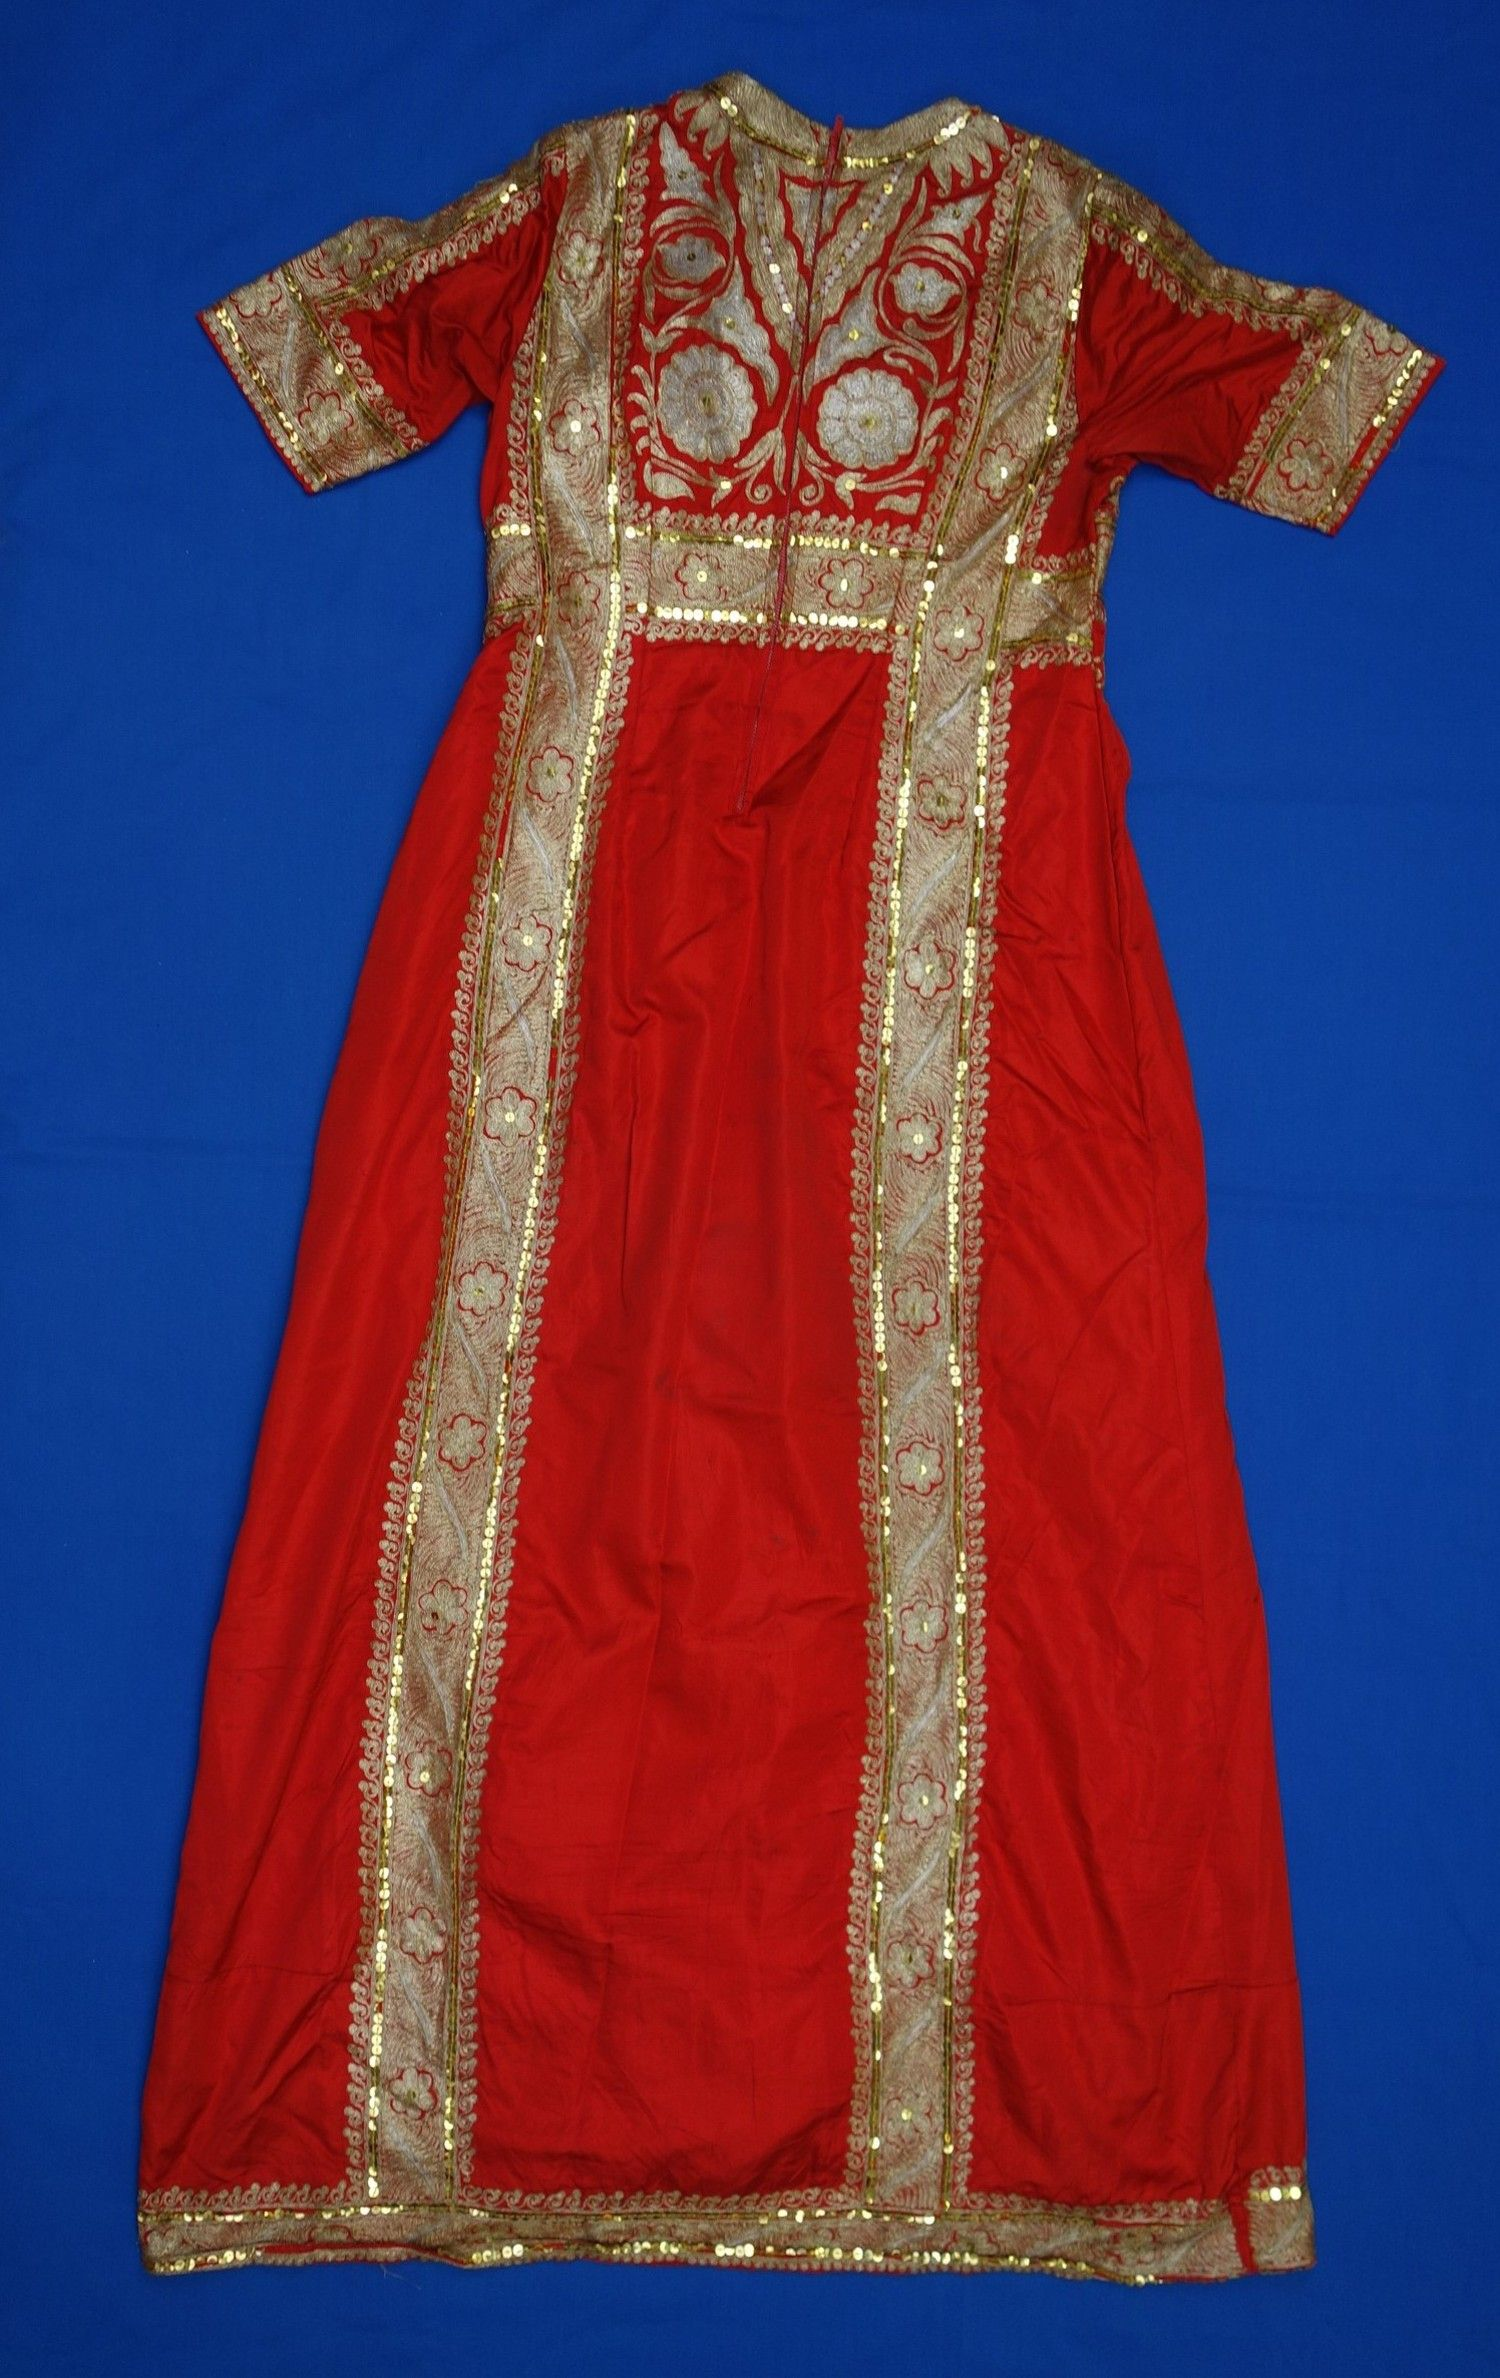 8ead37a5 Dress Size (cm):140 x 79, plus 2x sleeves of 26 Place of origin ...